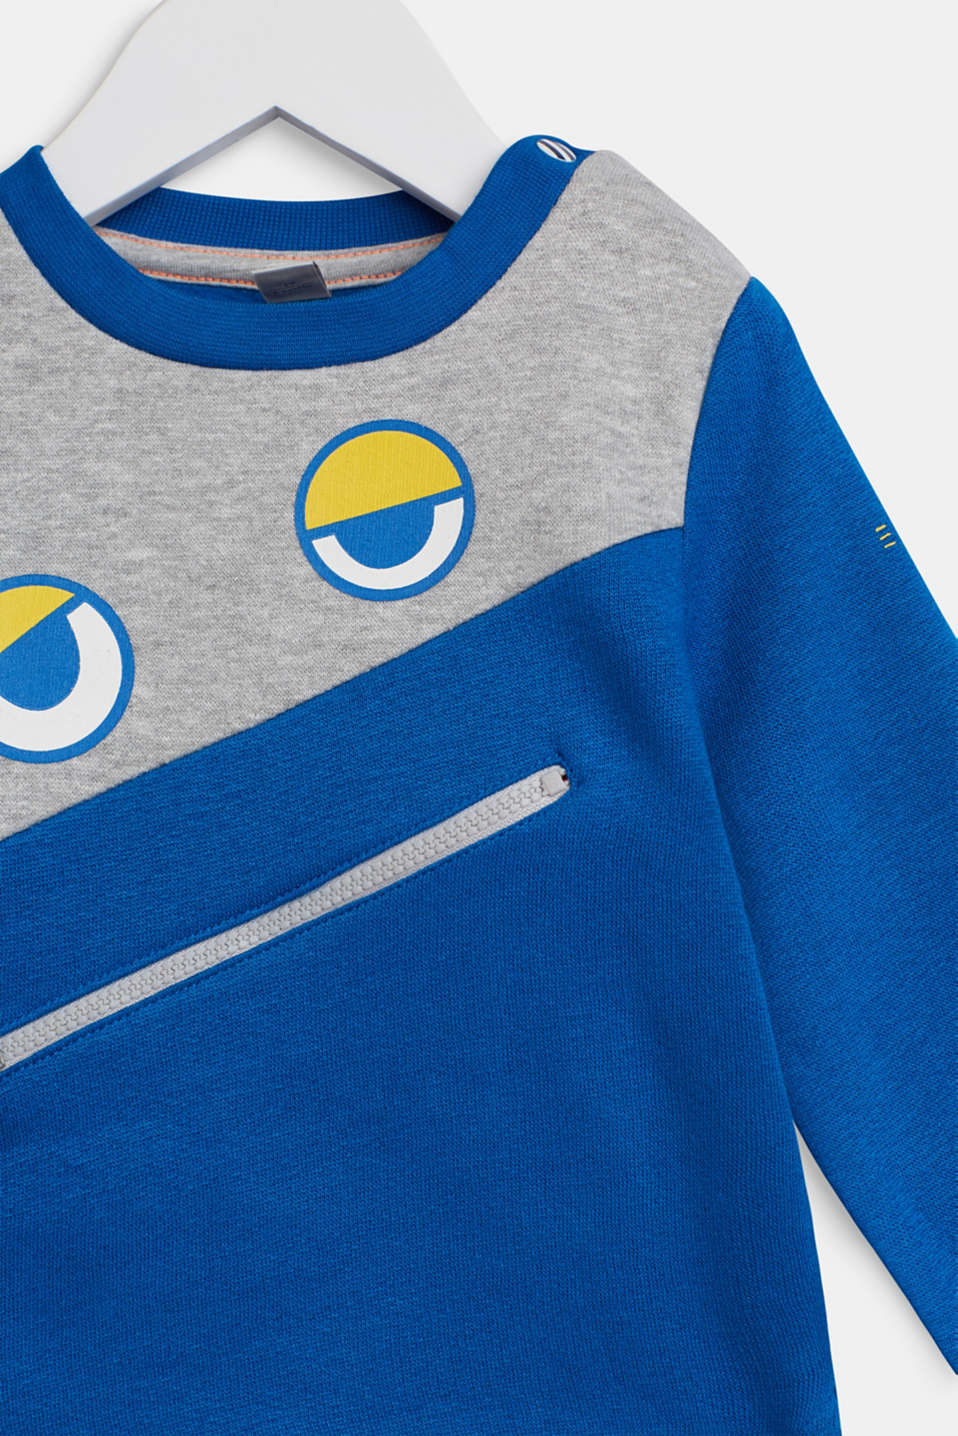 Sweatshirt with an eye print, LCBRIGHT BLUE, detail image number 2